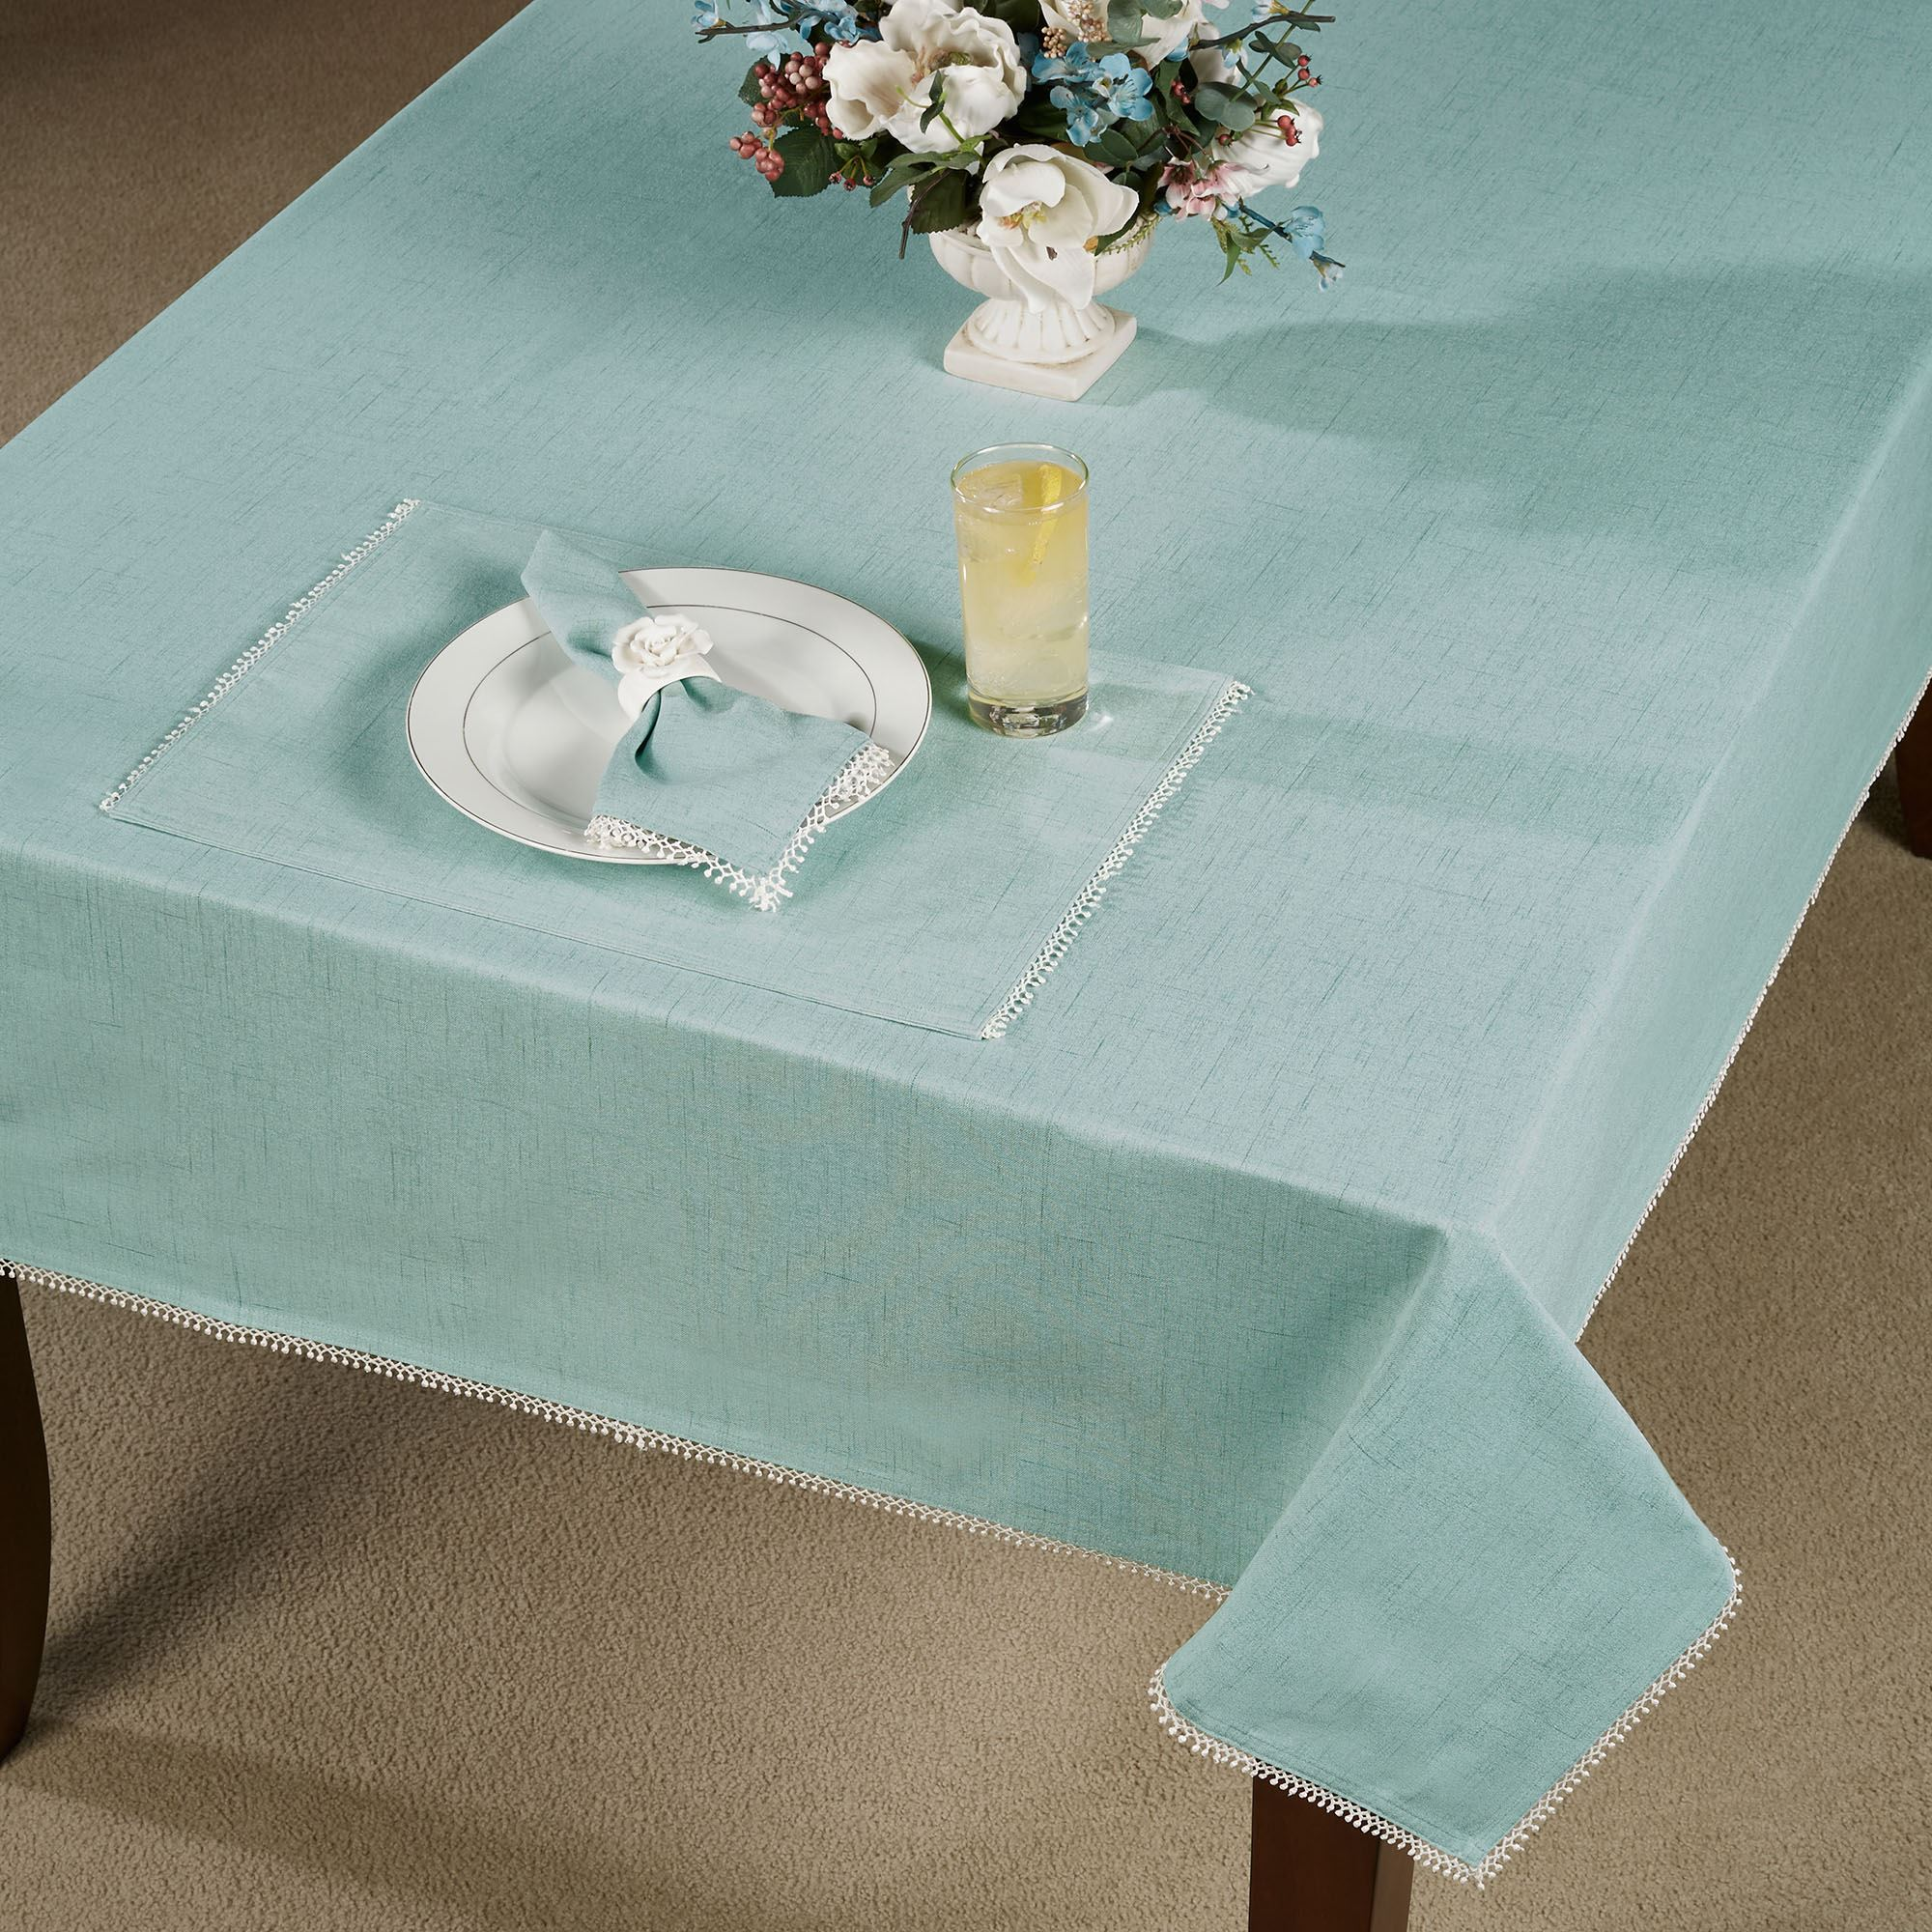 lenox french perle solid color table linens accent cloth covers tablecloth target laundry basket ceramic patio side foyer furniture pieces ikea large storage boxes sofa lucite